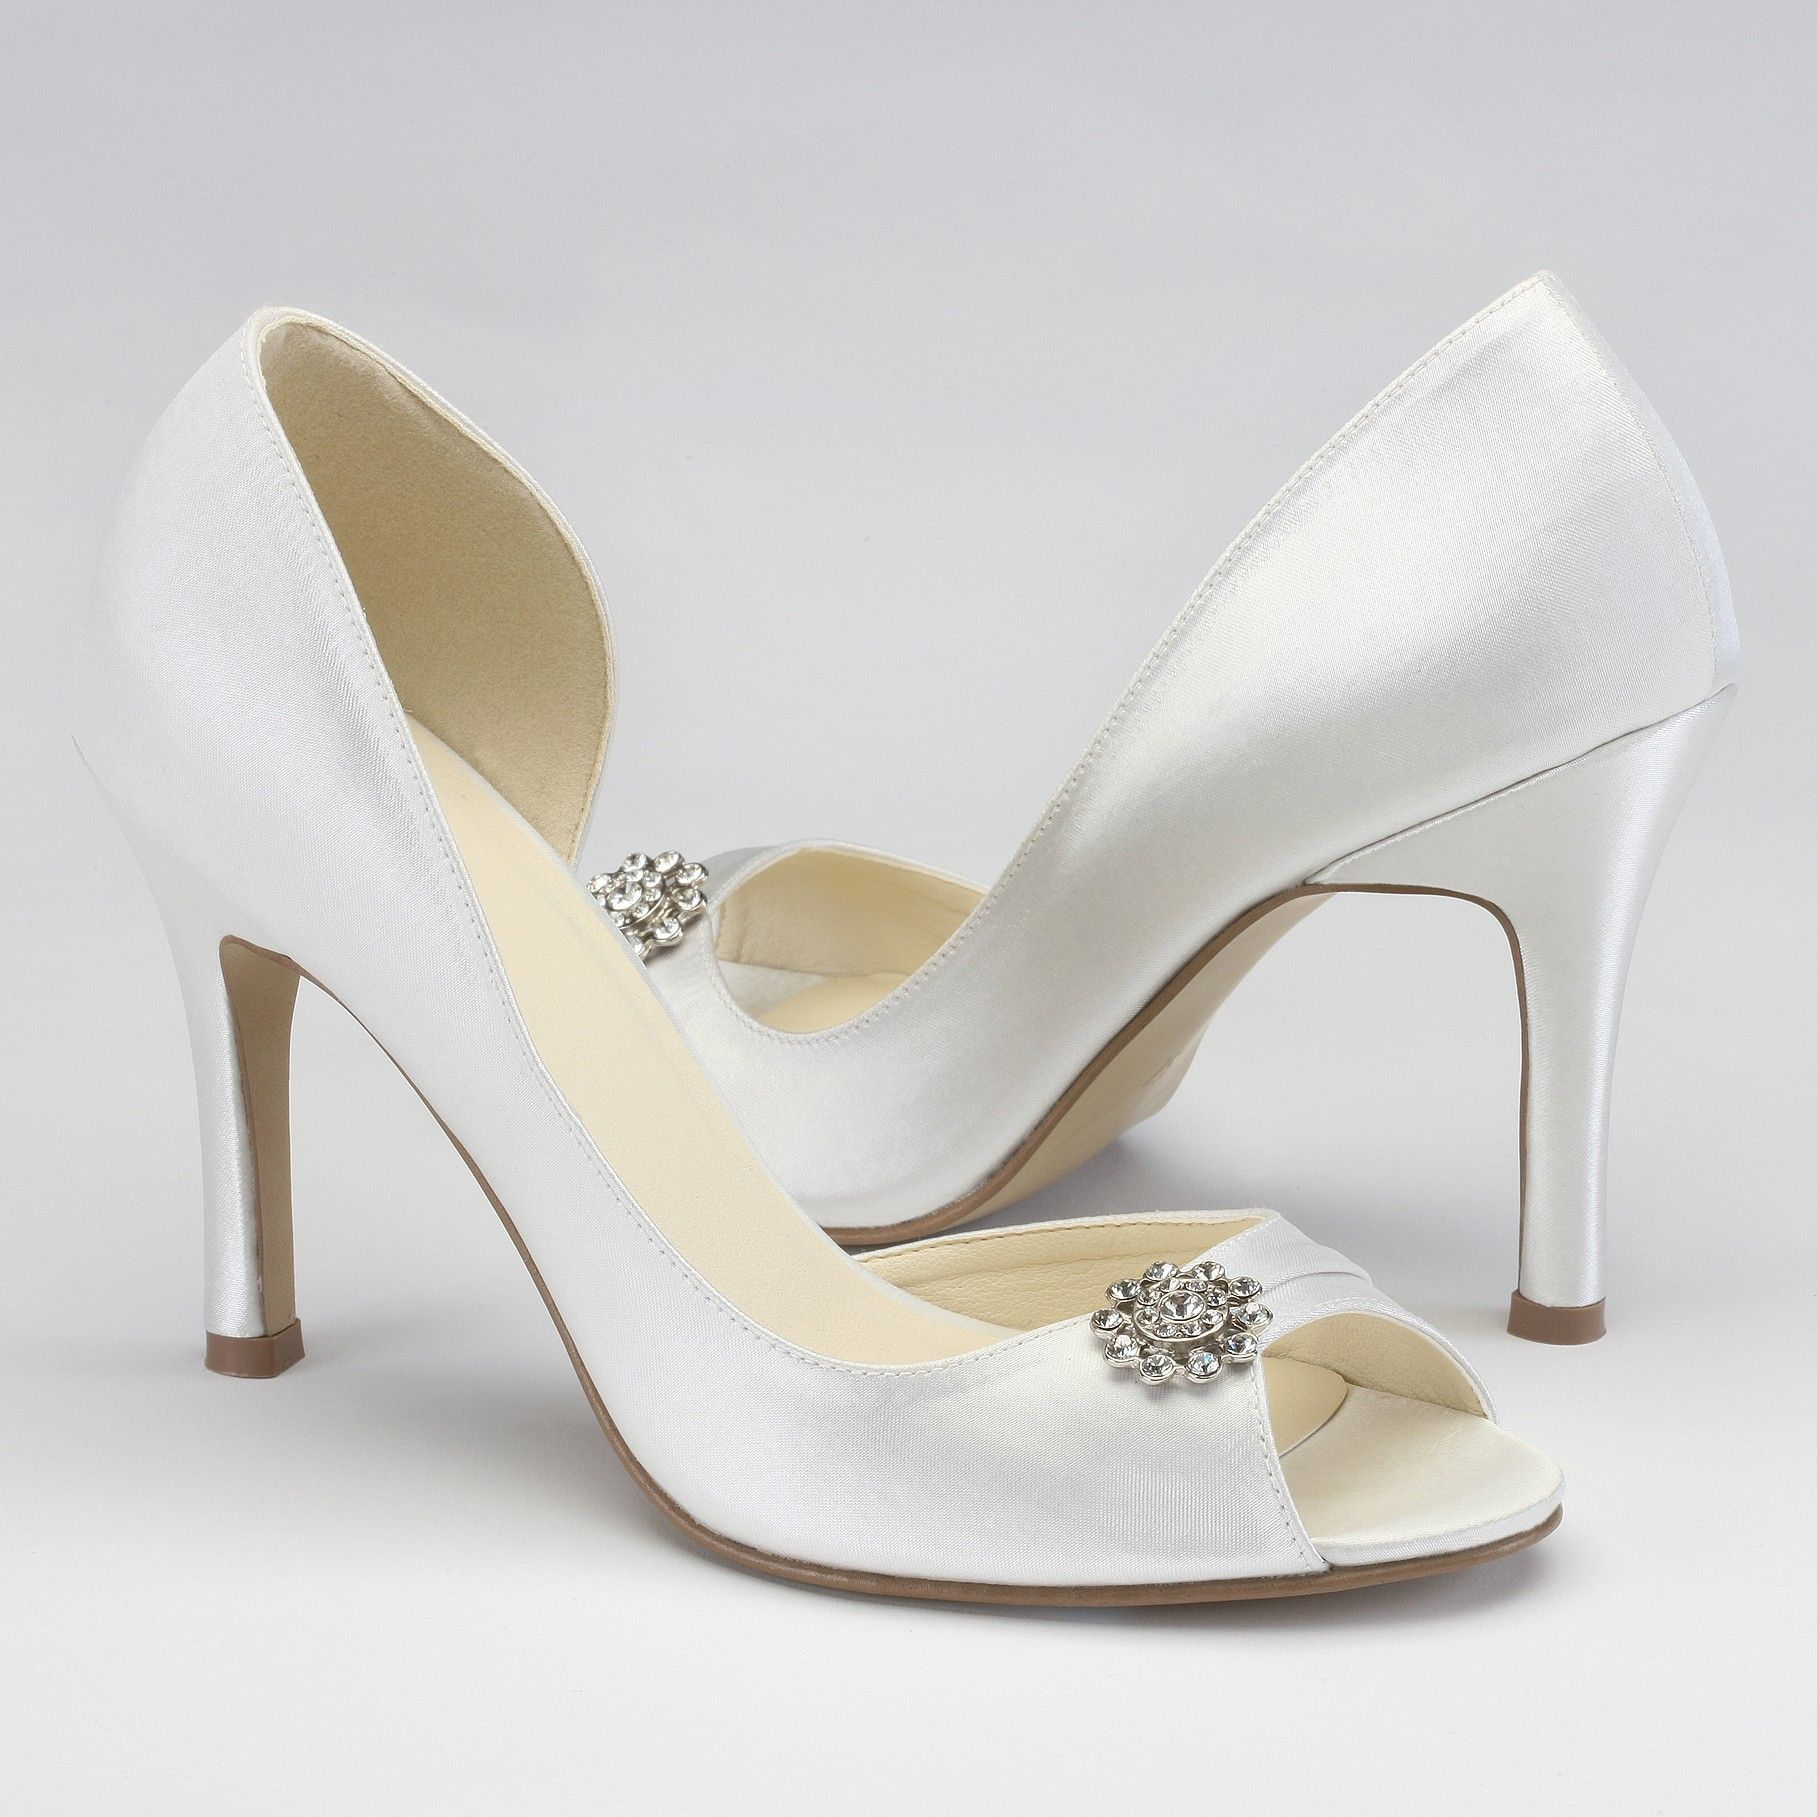 Bridal Shoes From Paradox's Aura Collection. Model 'Hope